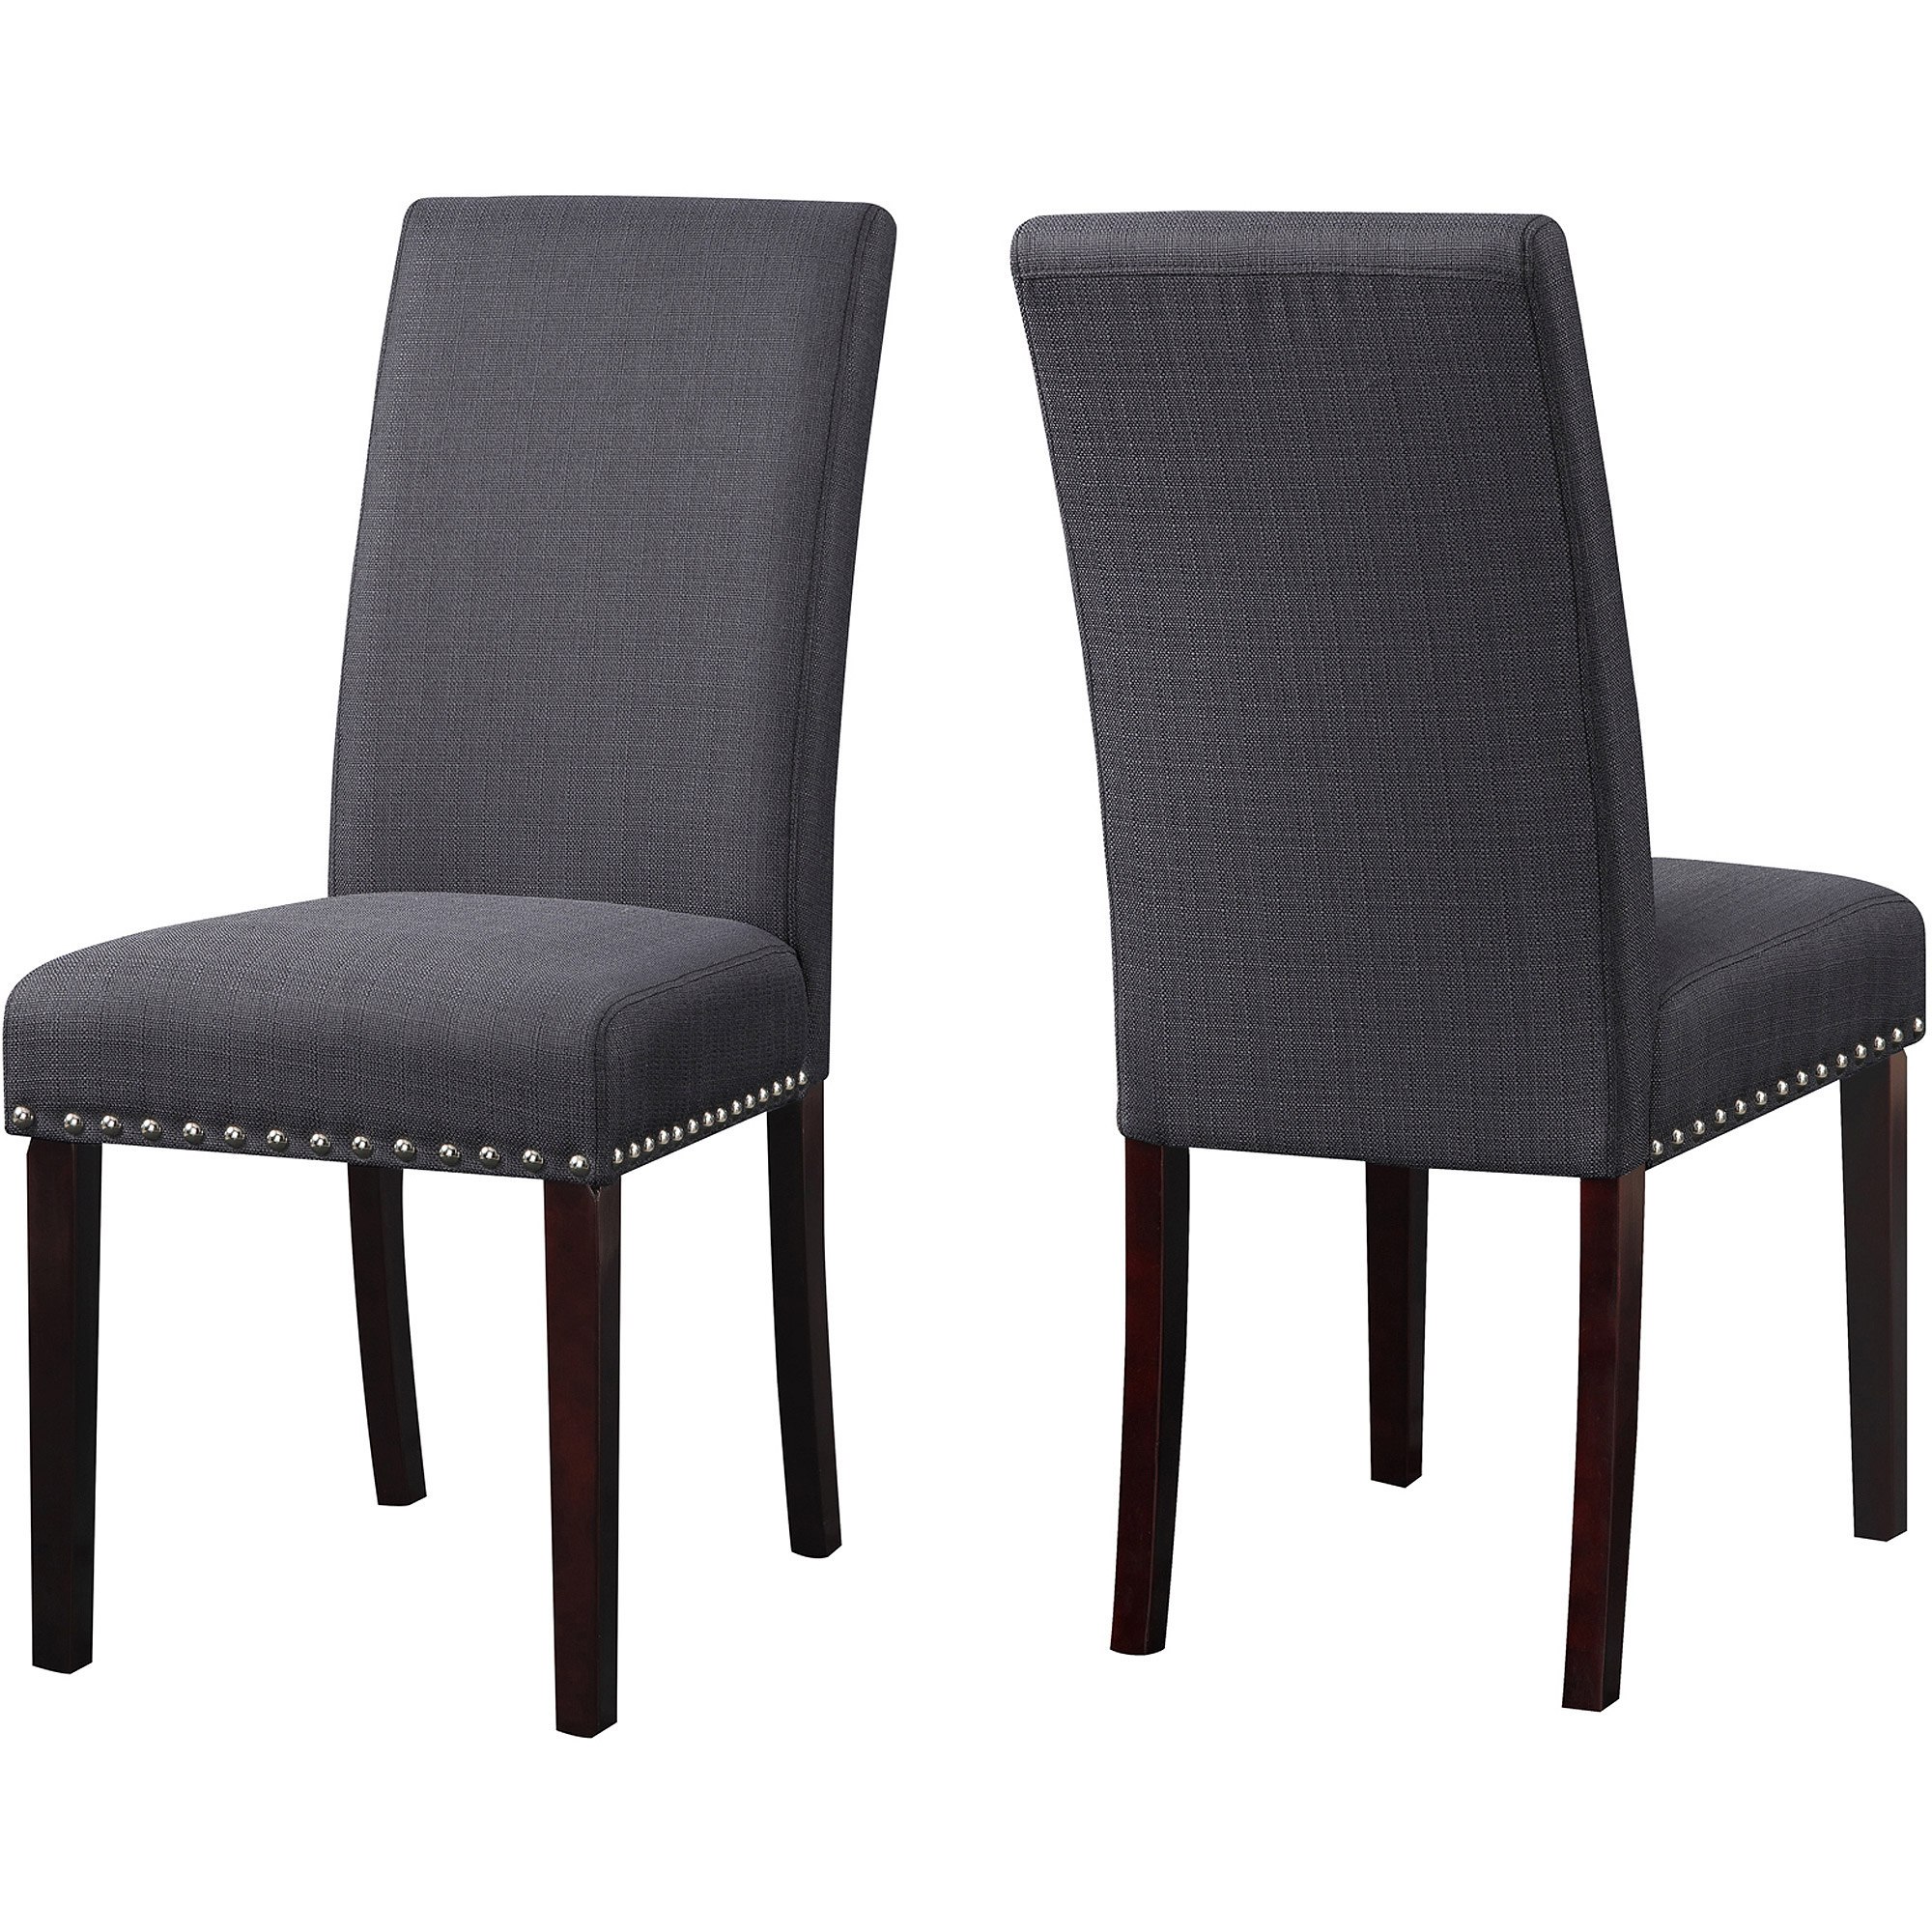 Beau DHI Nice Nail Head Upholstered Dining Chair, 2 Pack, Multiple Colors